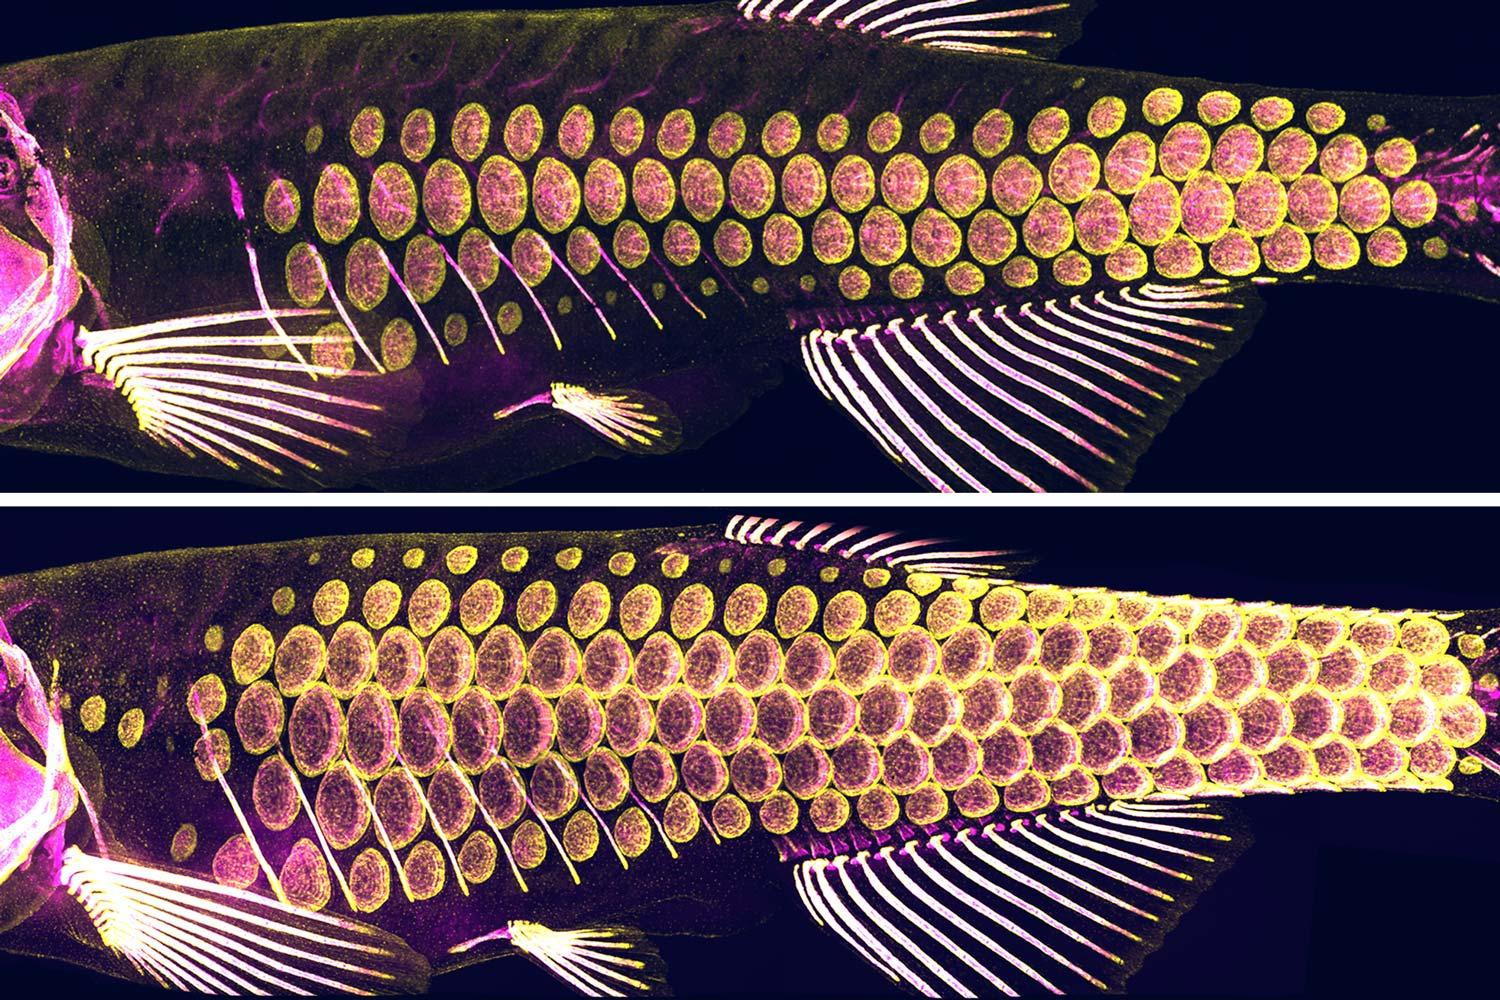 In these images of zebrafish scales, yellow marks the cells that produce bony material. Magenta marks the bony material.